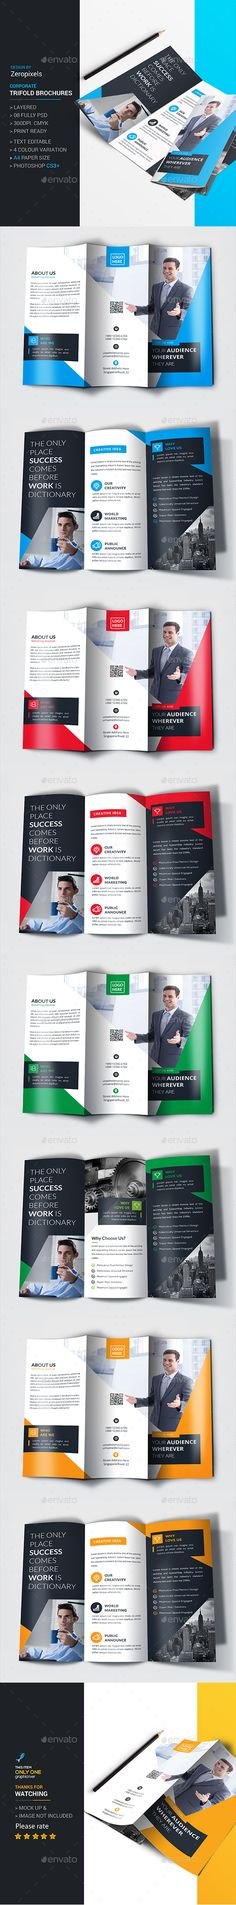 Fitness Trifold Brochure Bundle Template, Brochures and Fitness - fitness brochure